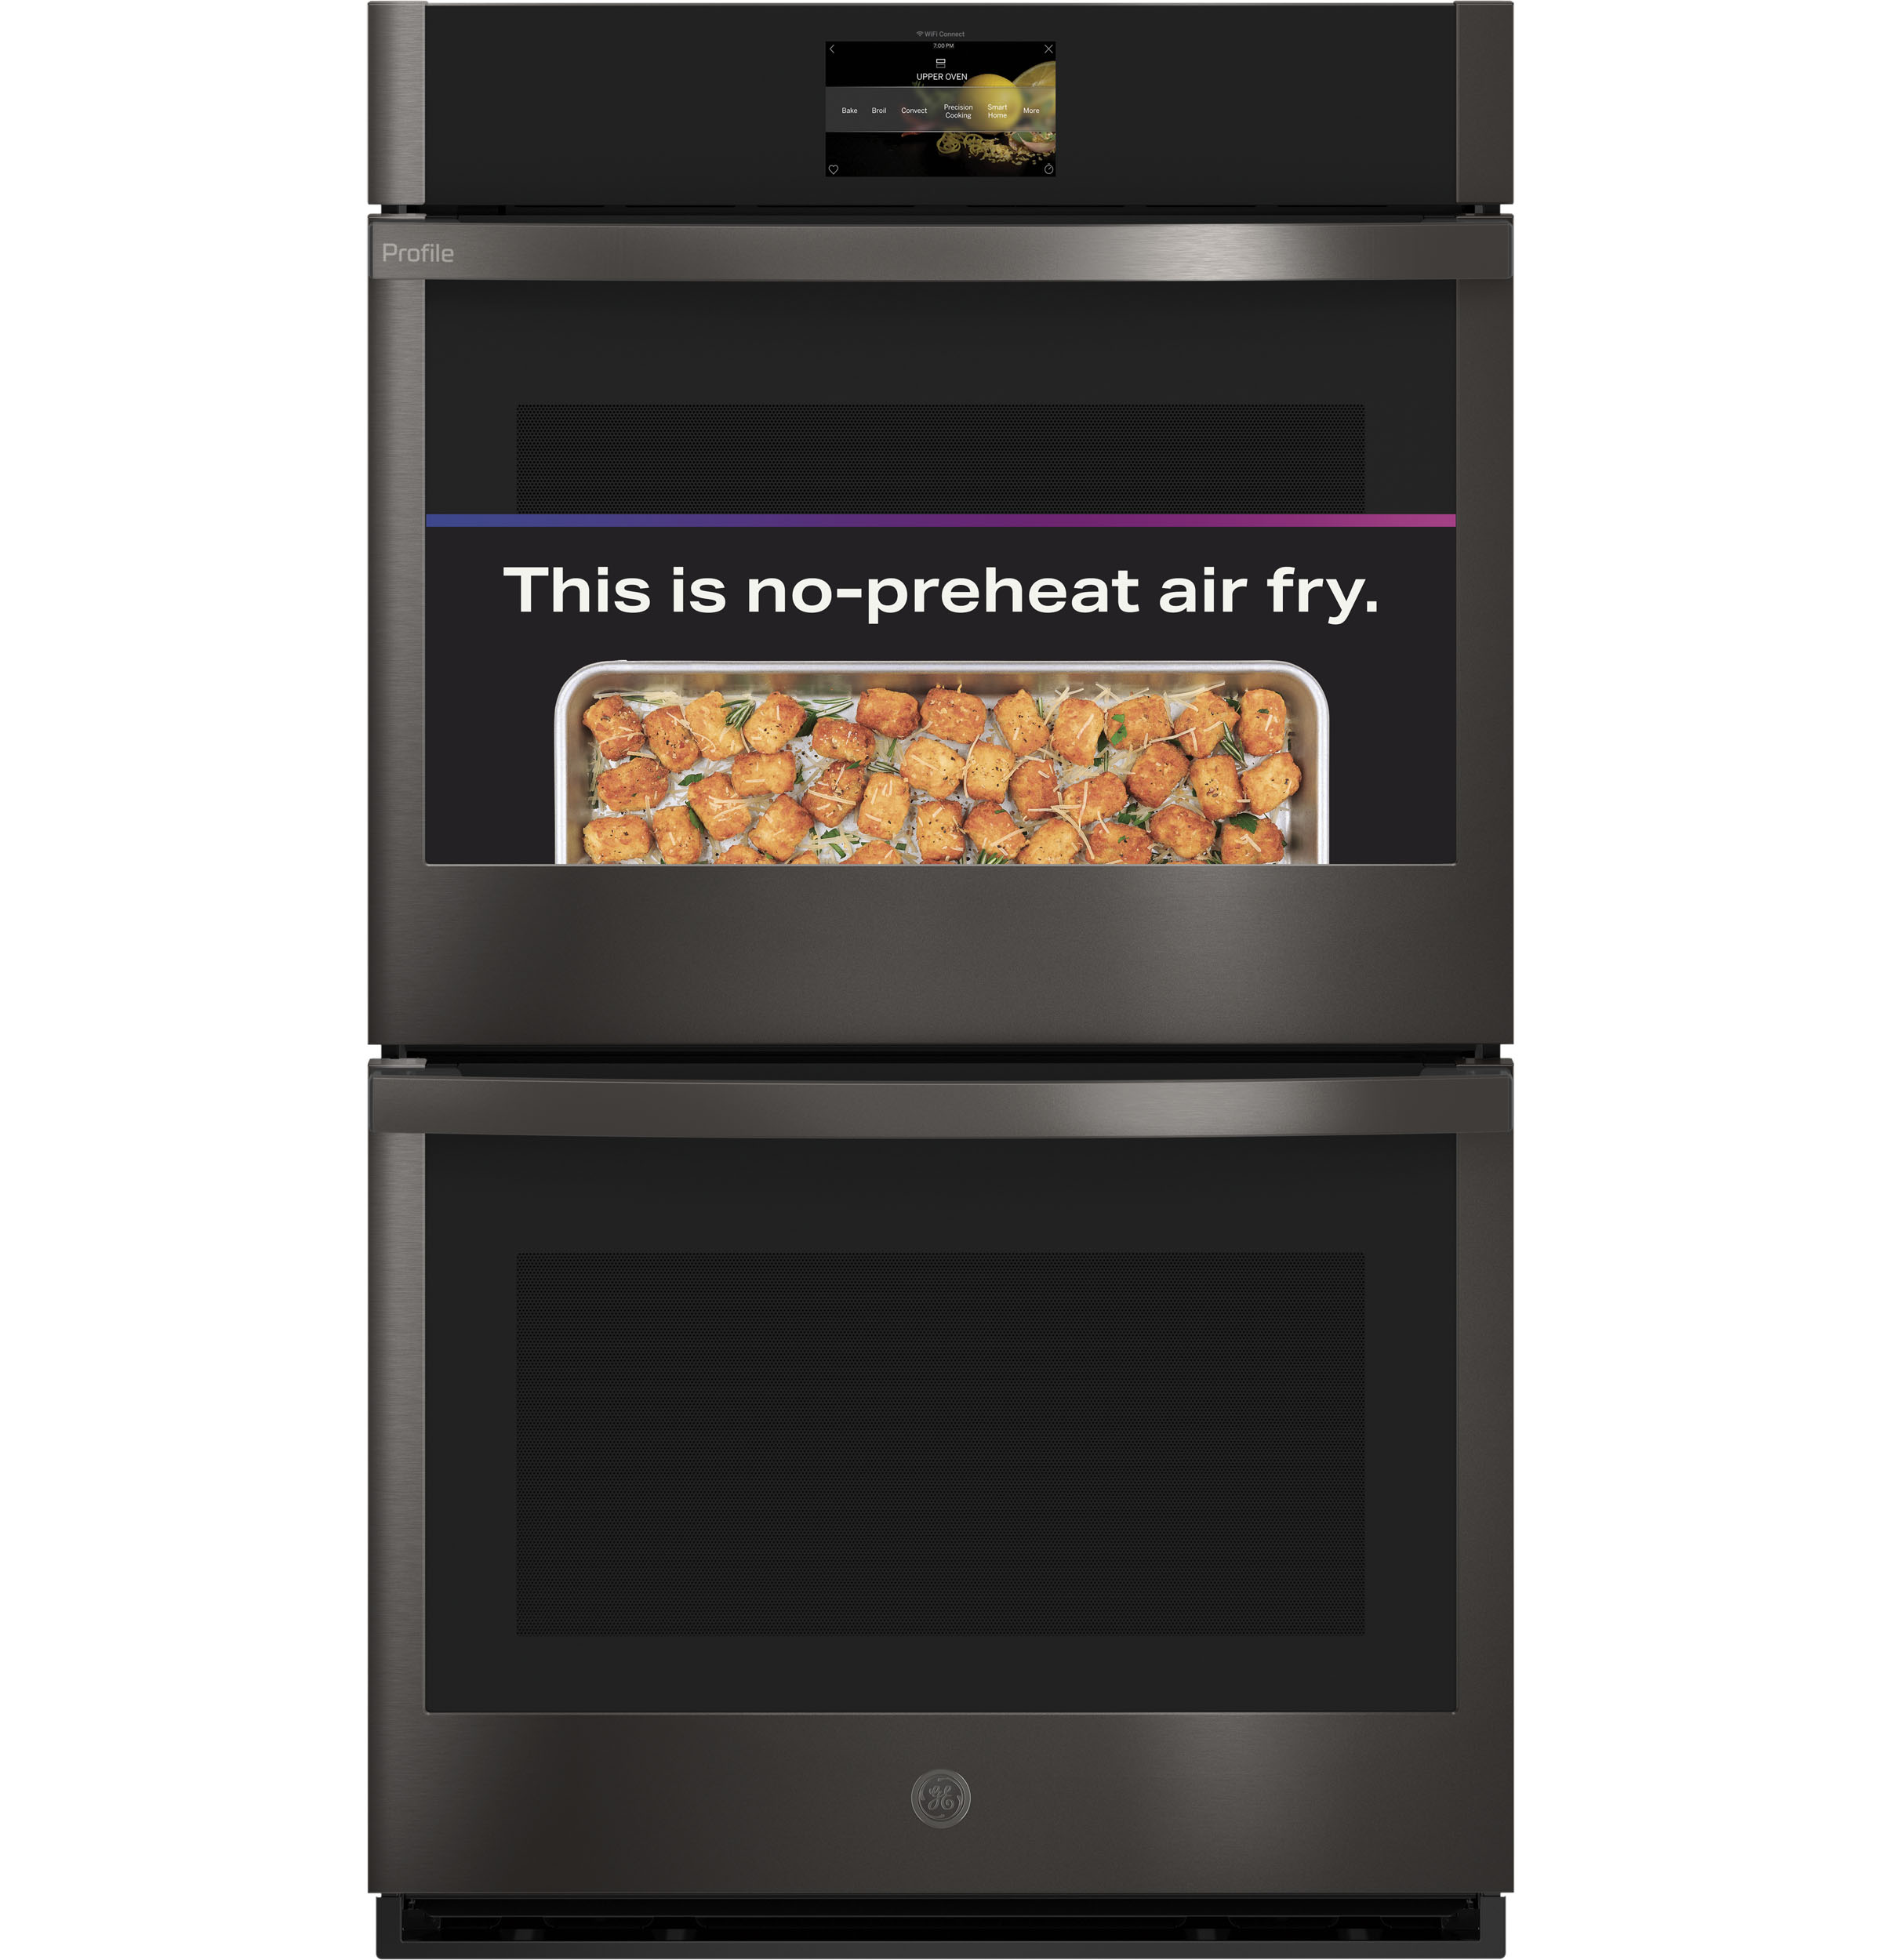 """Model: PTD7000BNTS   GE Profile GE Profile™ 30"""" Smart Built-In Convection Double Wall Oven with No Preheat Air Fry and Precision Cooking"""